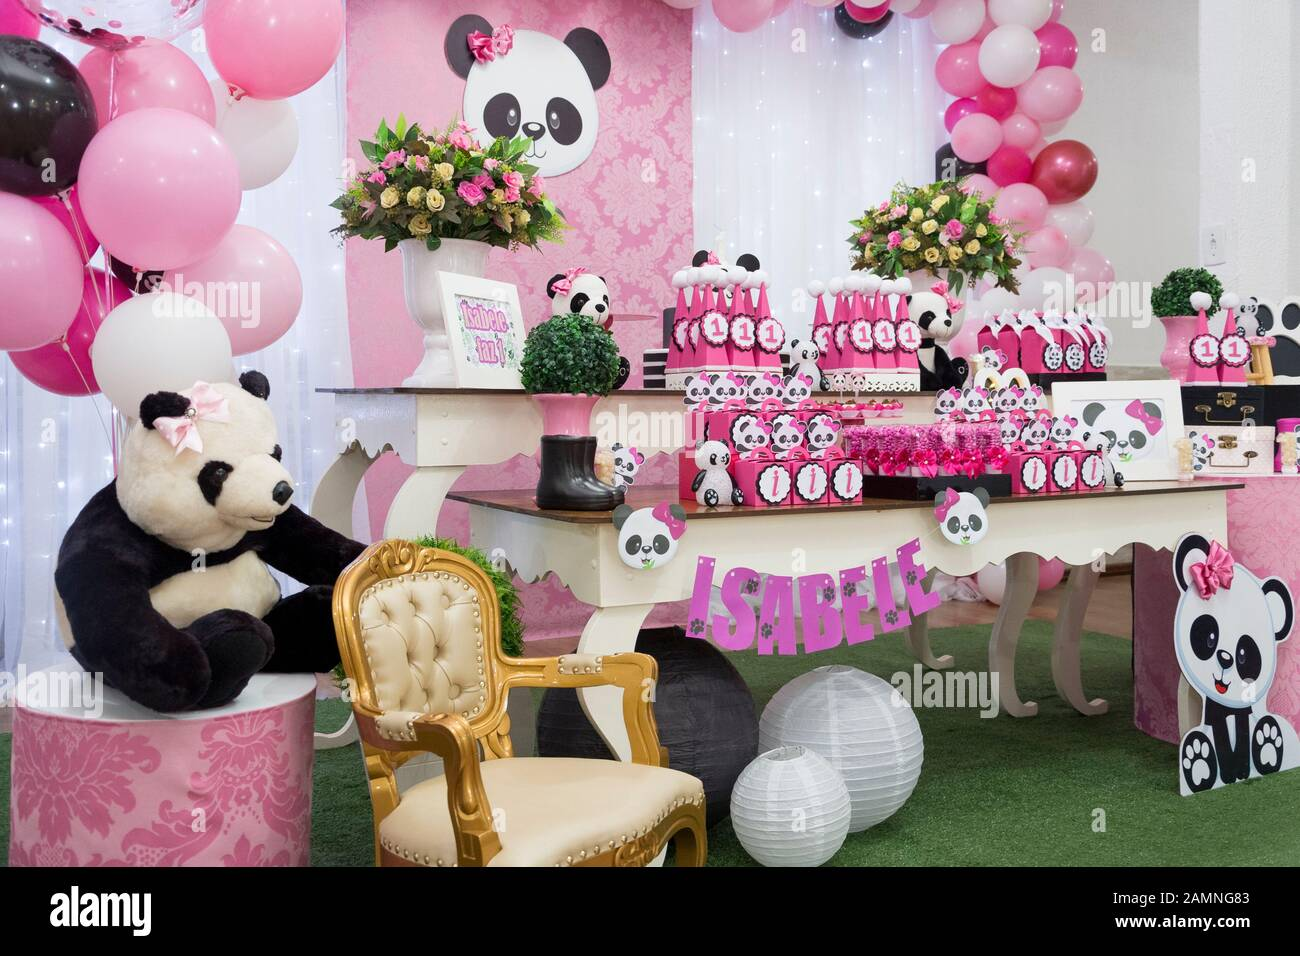 Terrific Table Of Sweets And Birthday Cake Girl Party Decorated With Panda Funny Birthday Cards Online Elaedamsfinfo